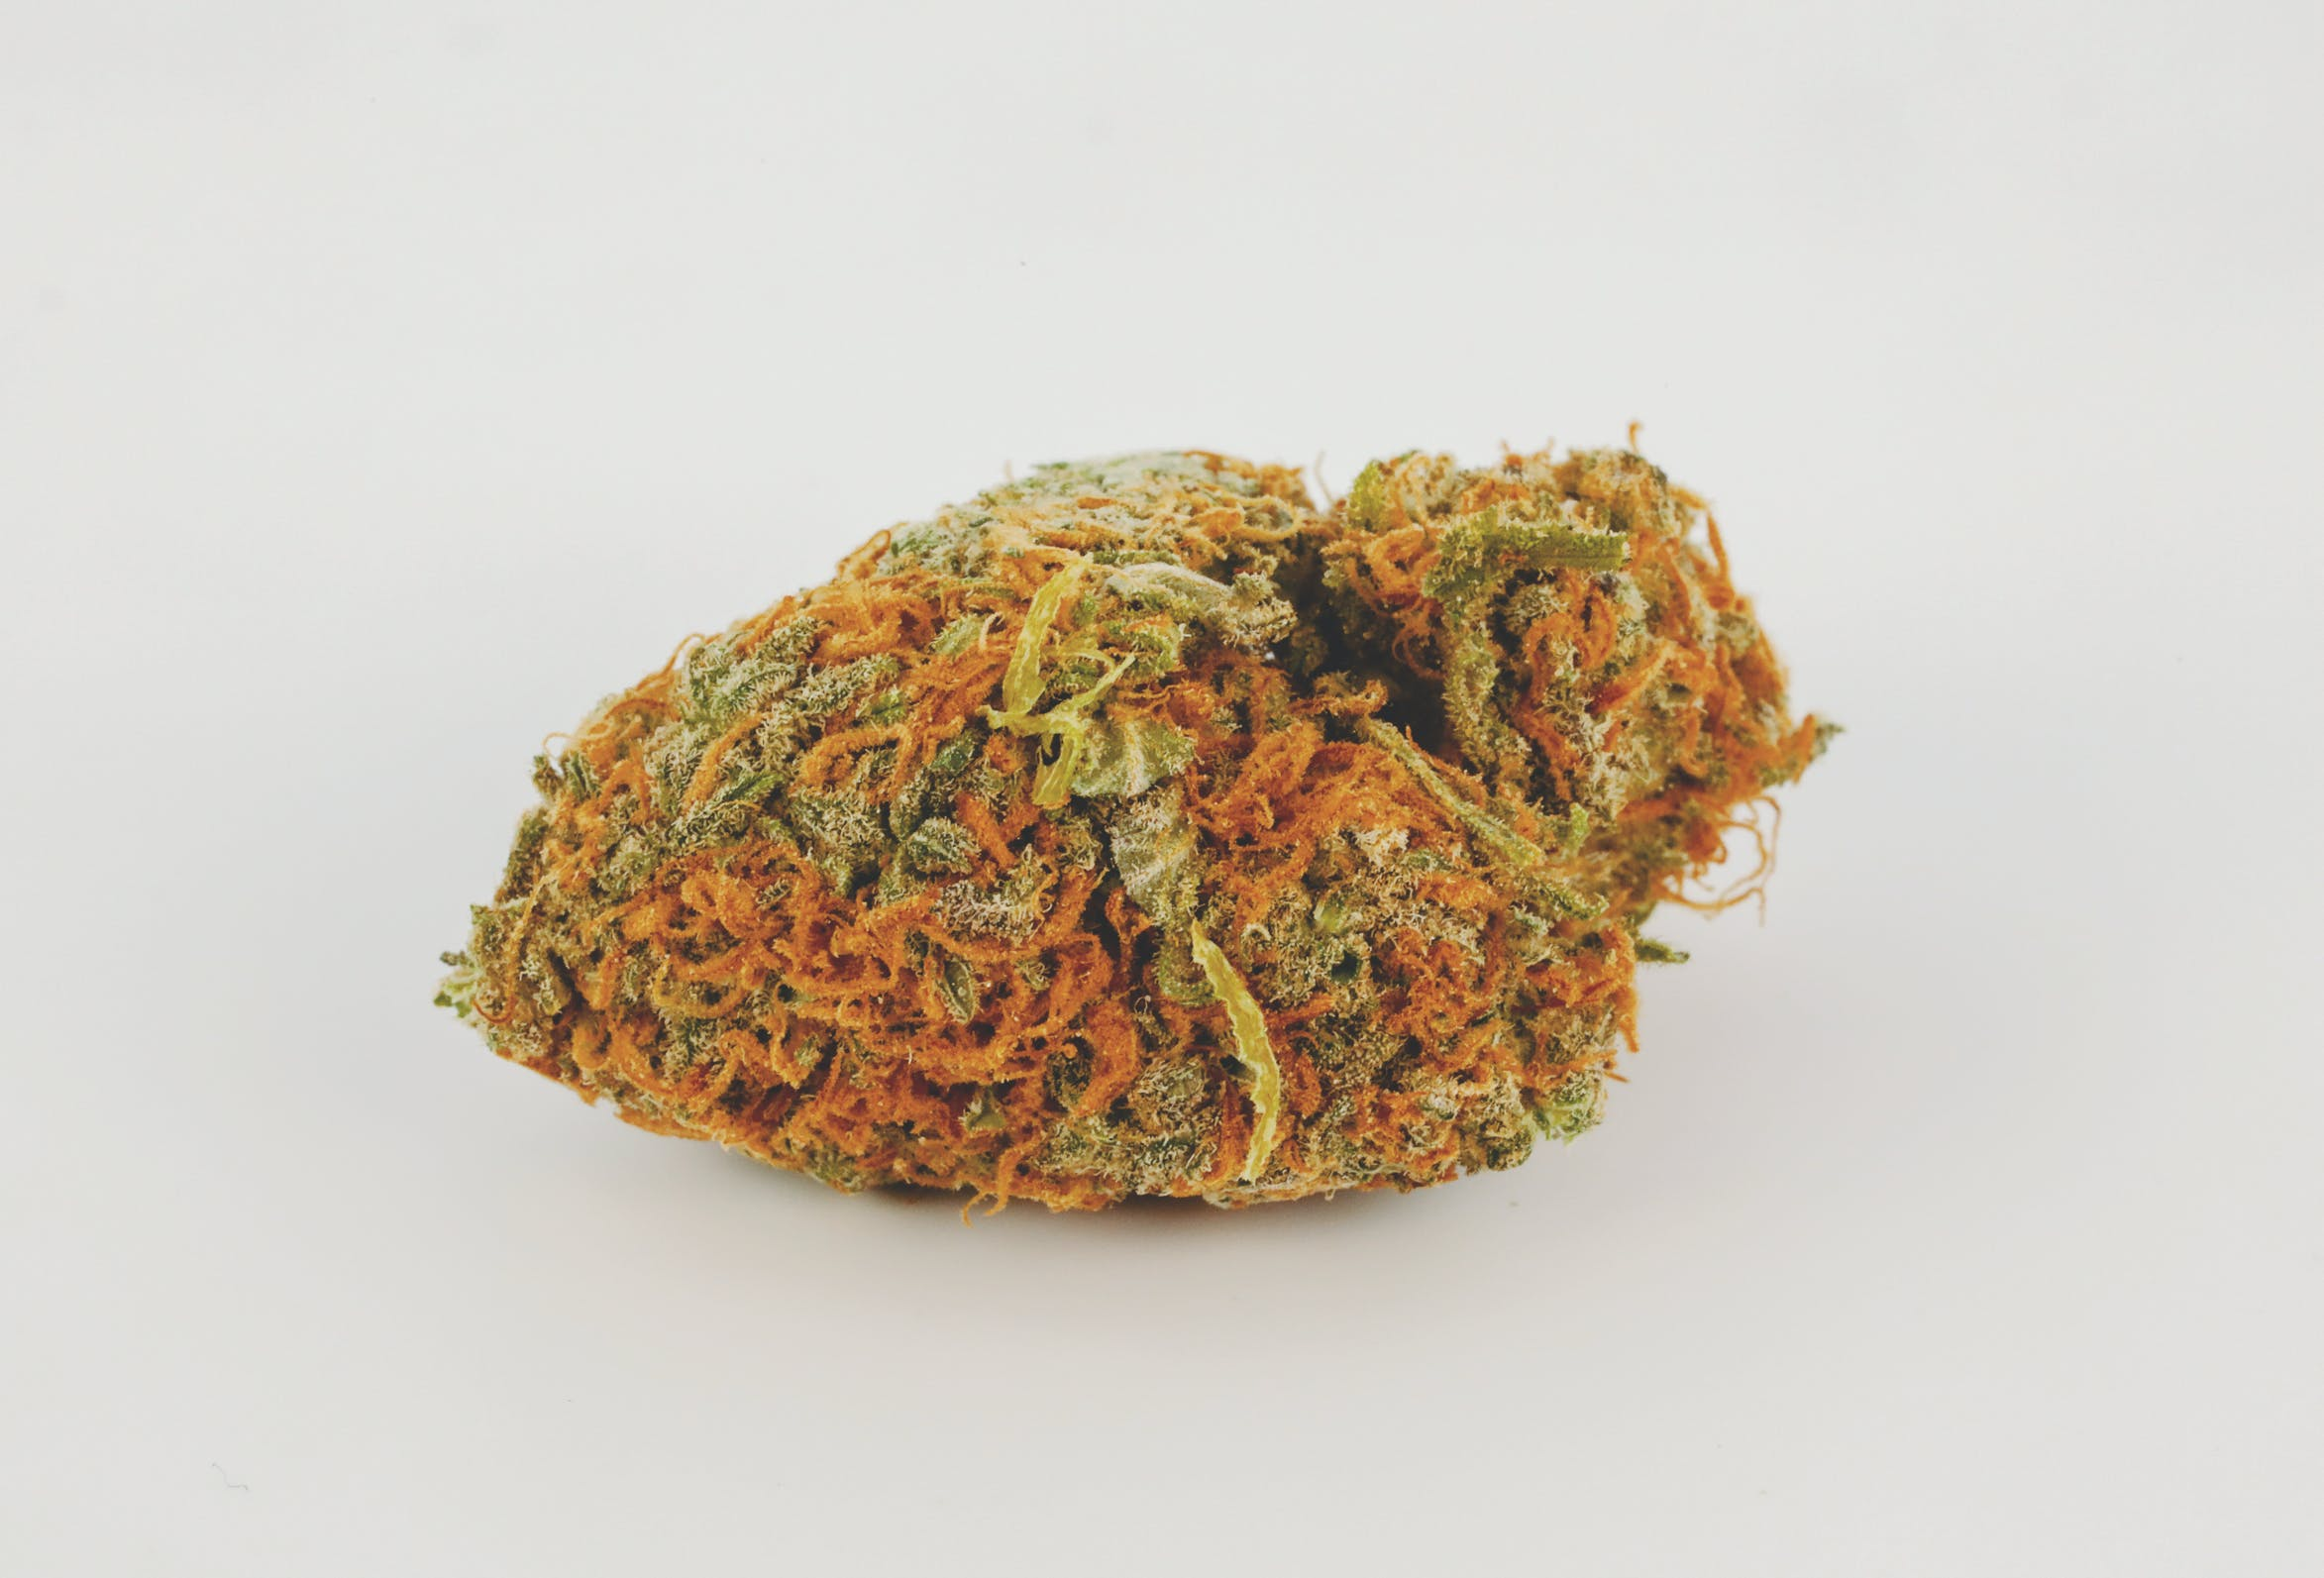 Best Kush Strains 5 These are the Best Kush Strains on the Planet